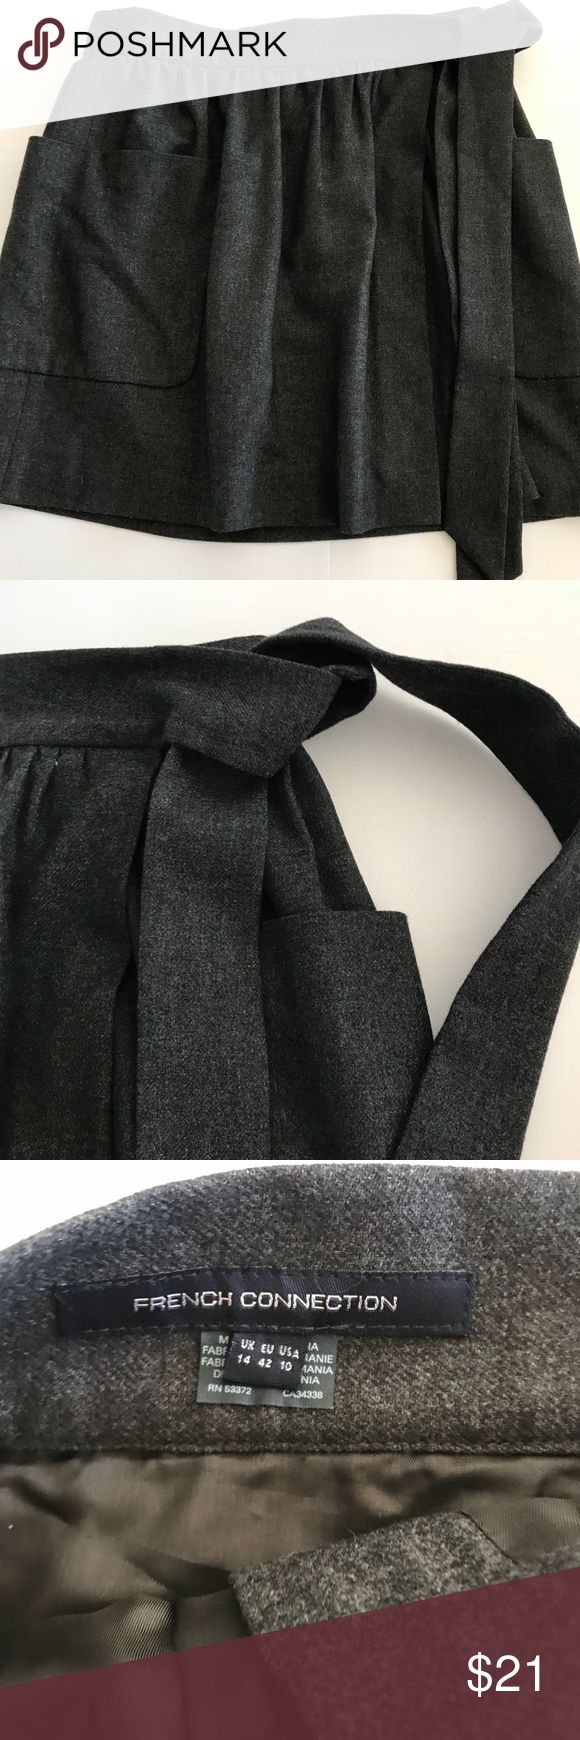 """French Connection Wrap Skirt Beautiful French Connection Skirt.... A deep Grey, it completely wraps around the waist, with poppers to secure it, and ties on the side. Little to no wearing. Perfect condition   Measurements  Waist 15.5"""" Length 17"""" French Connection Skirts A-Line or Full"""